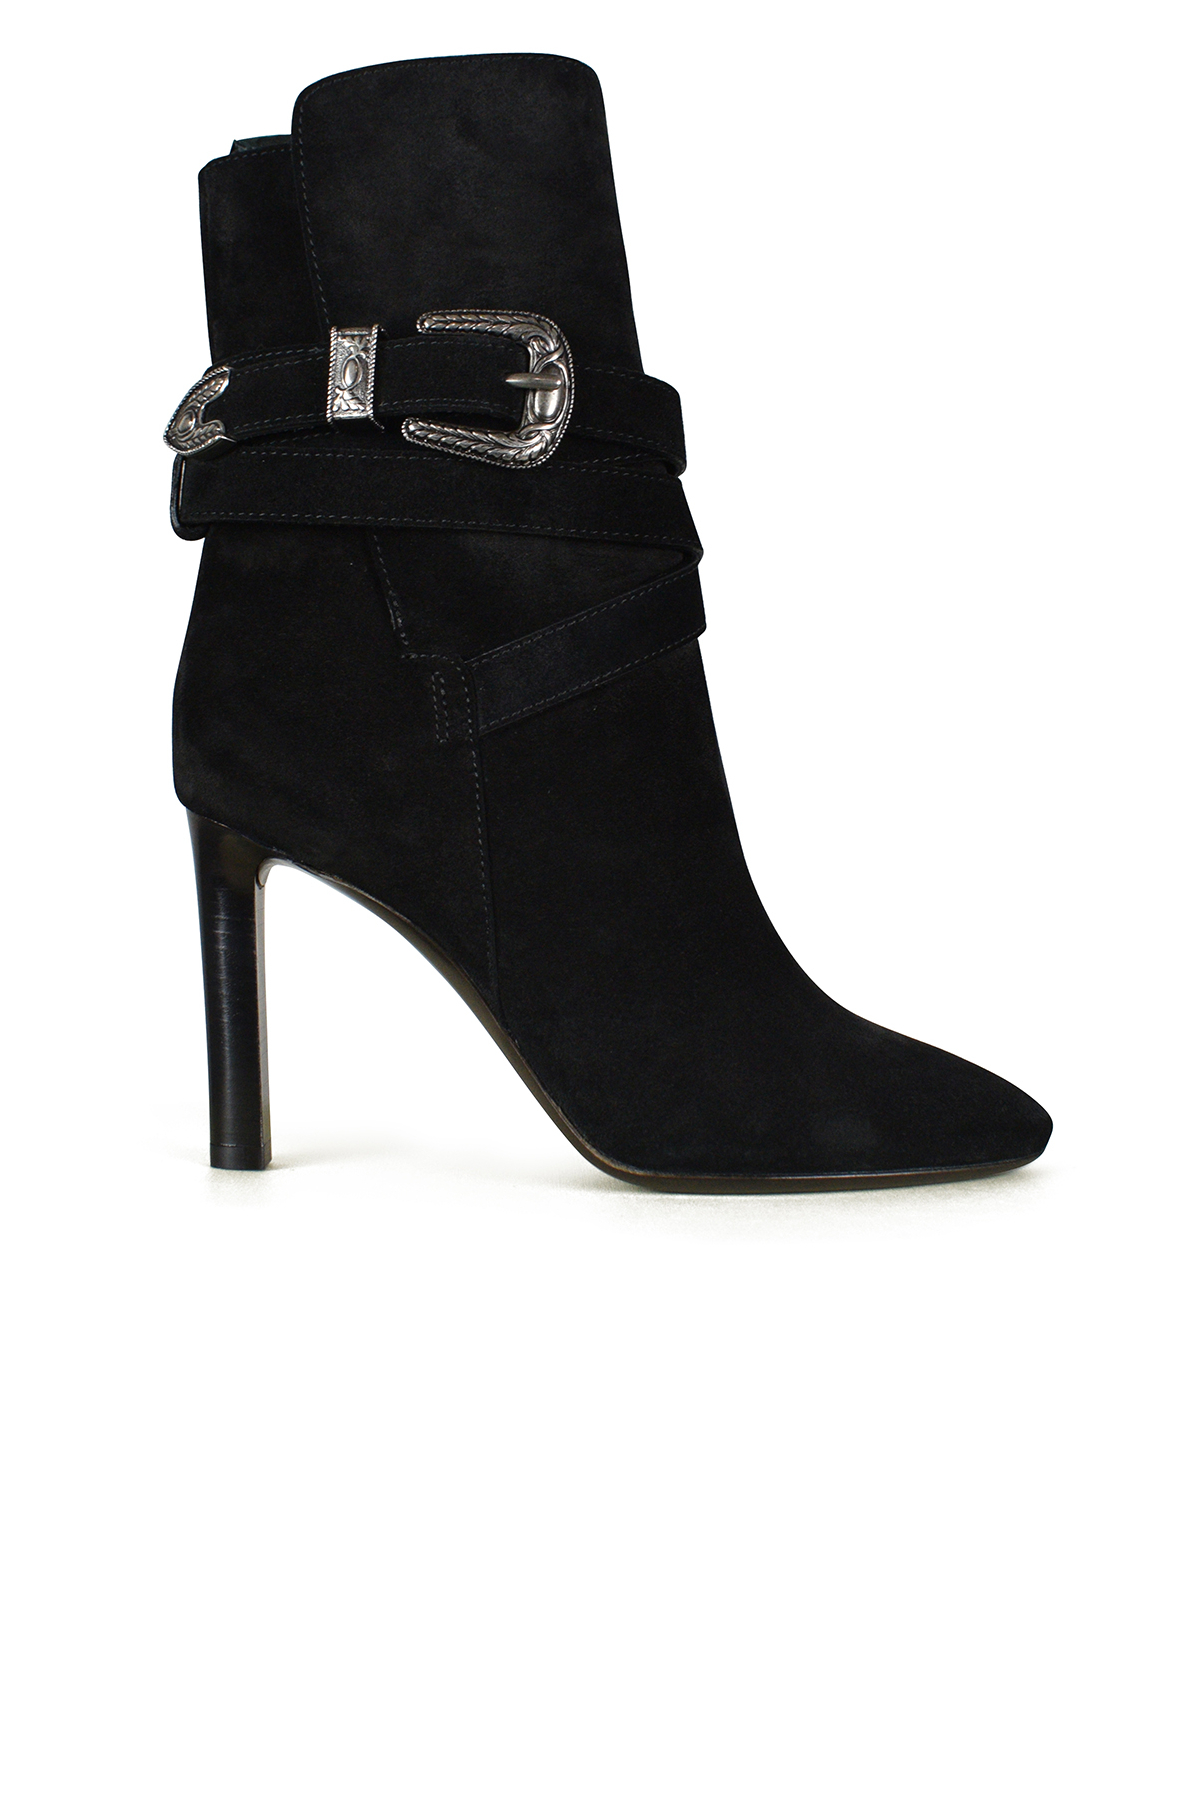 Saint Laurent Mica ankle boots in black suede.